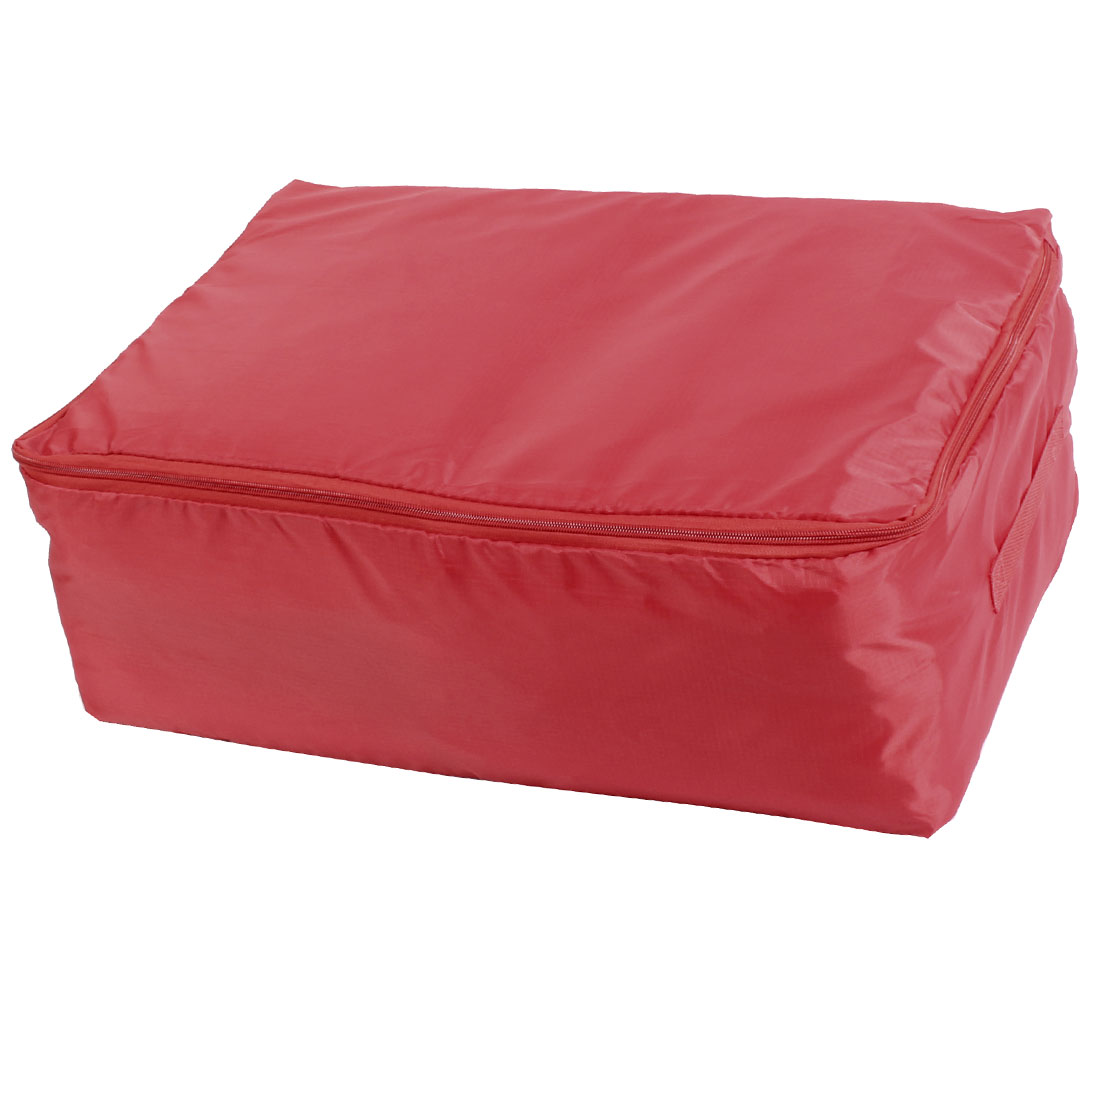 Home Oxford Cloth Water Resistant Zippered Quilt Storage Bag Red 55 x 35 x 20cm